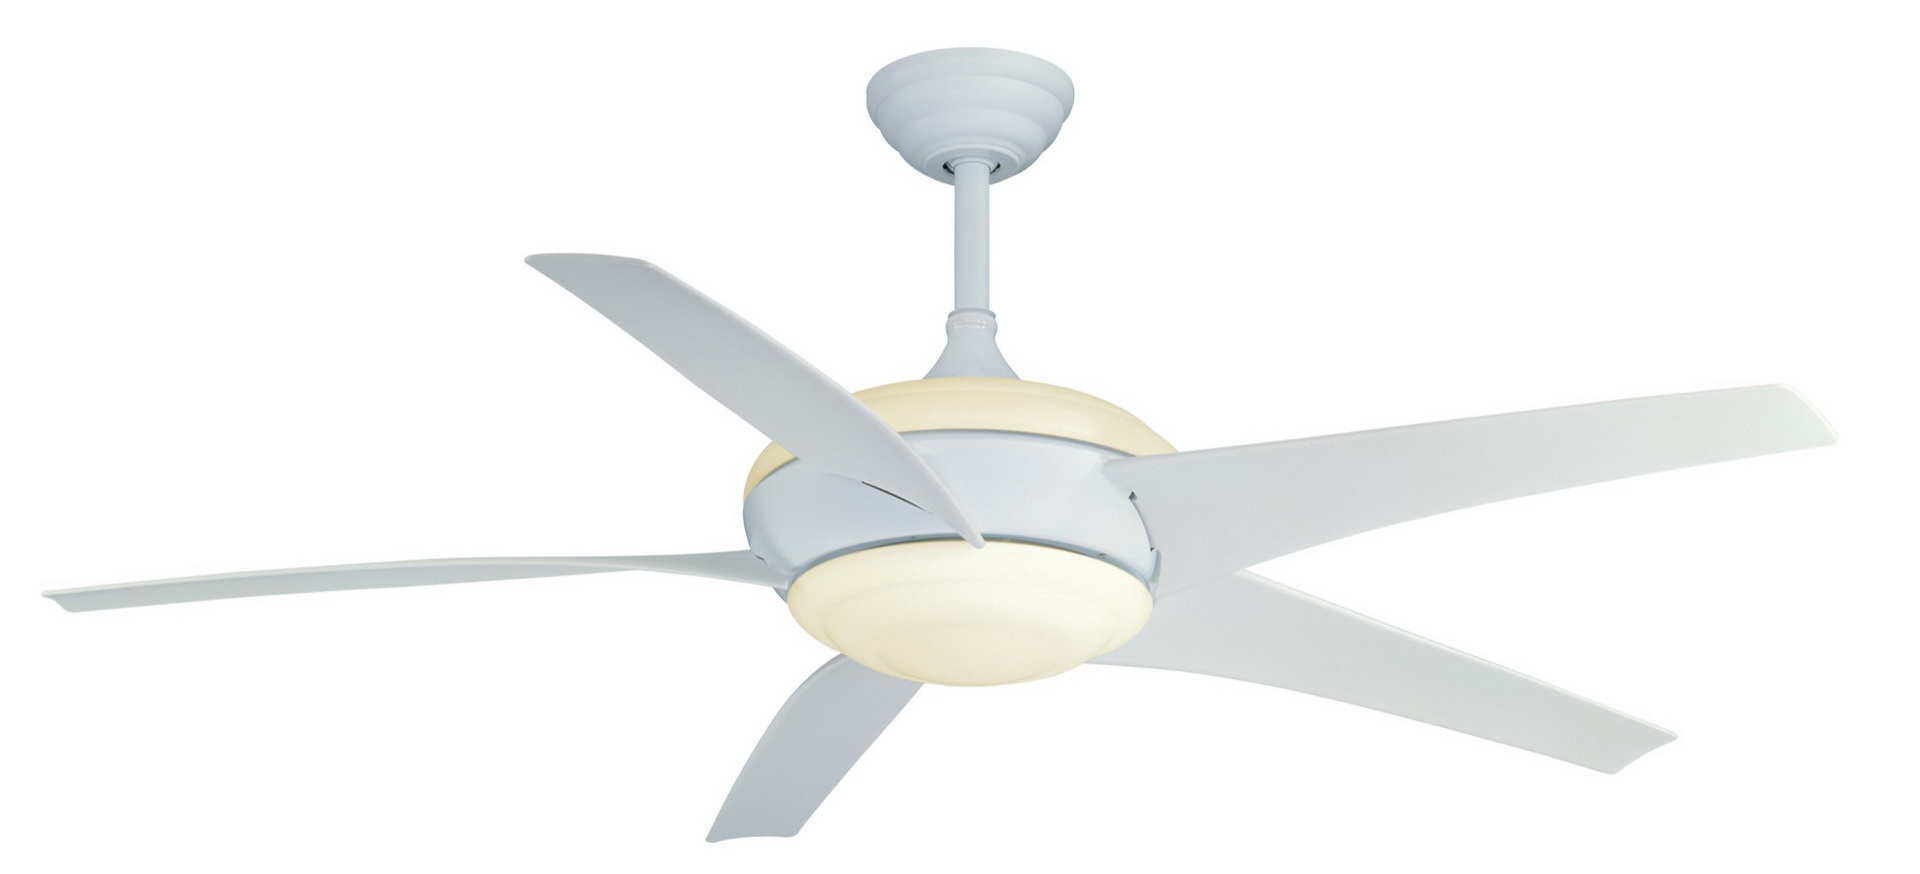 Ceiling Fan Stand Decorating Your Home Using Hampton Bay Ceiling Fan White